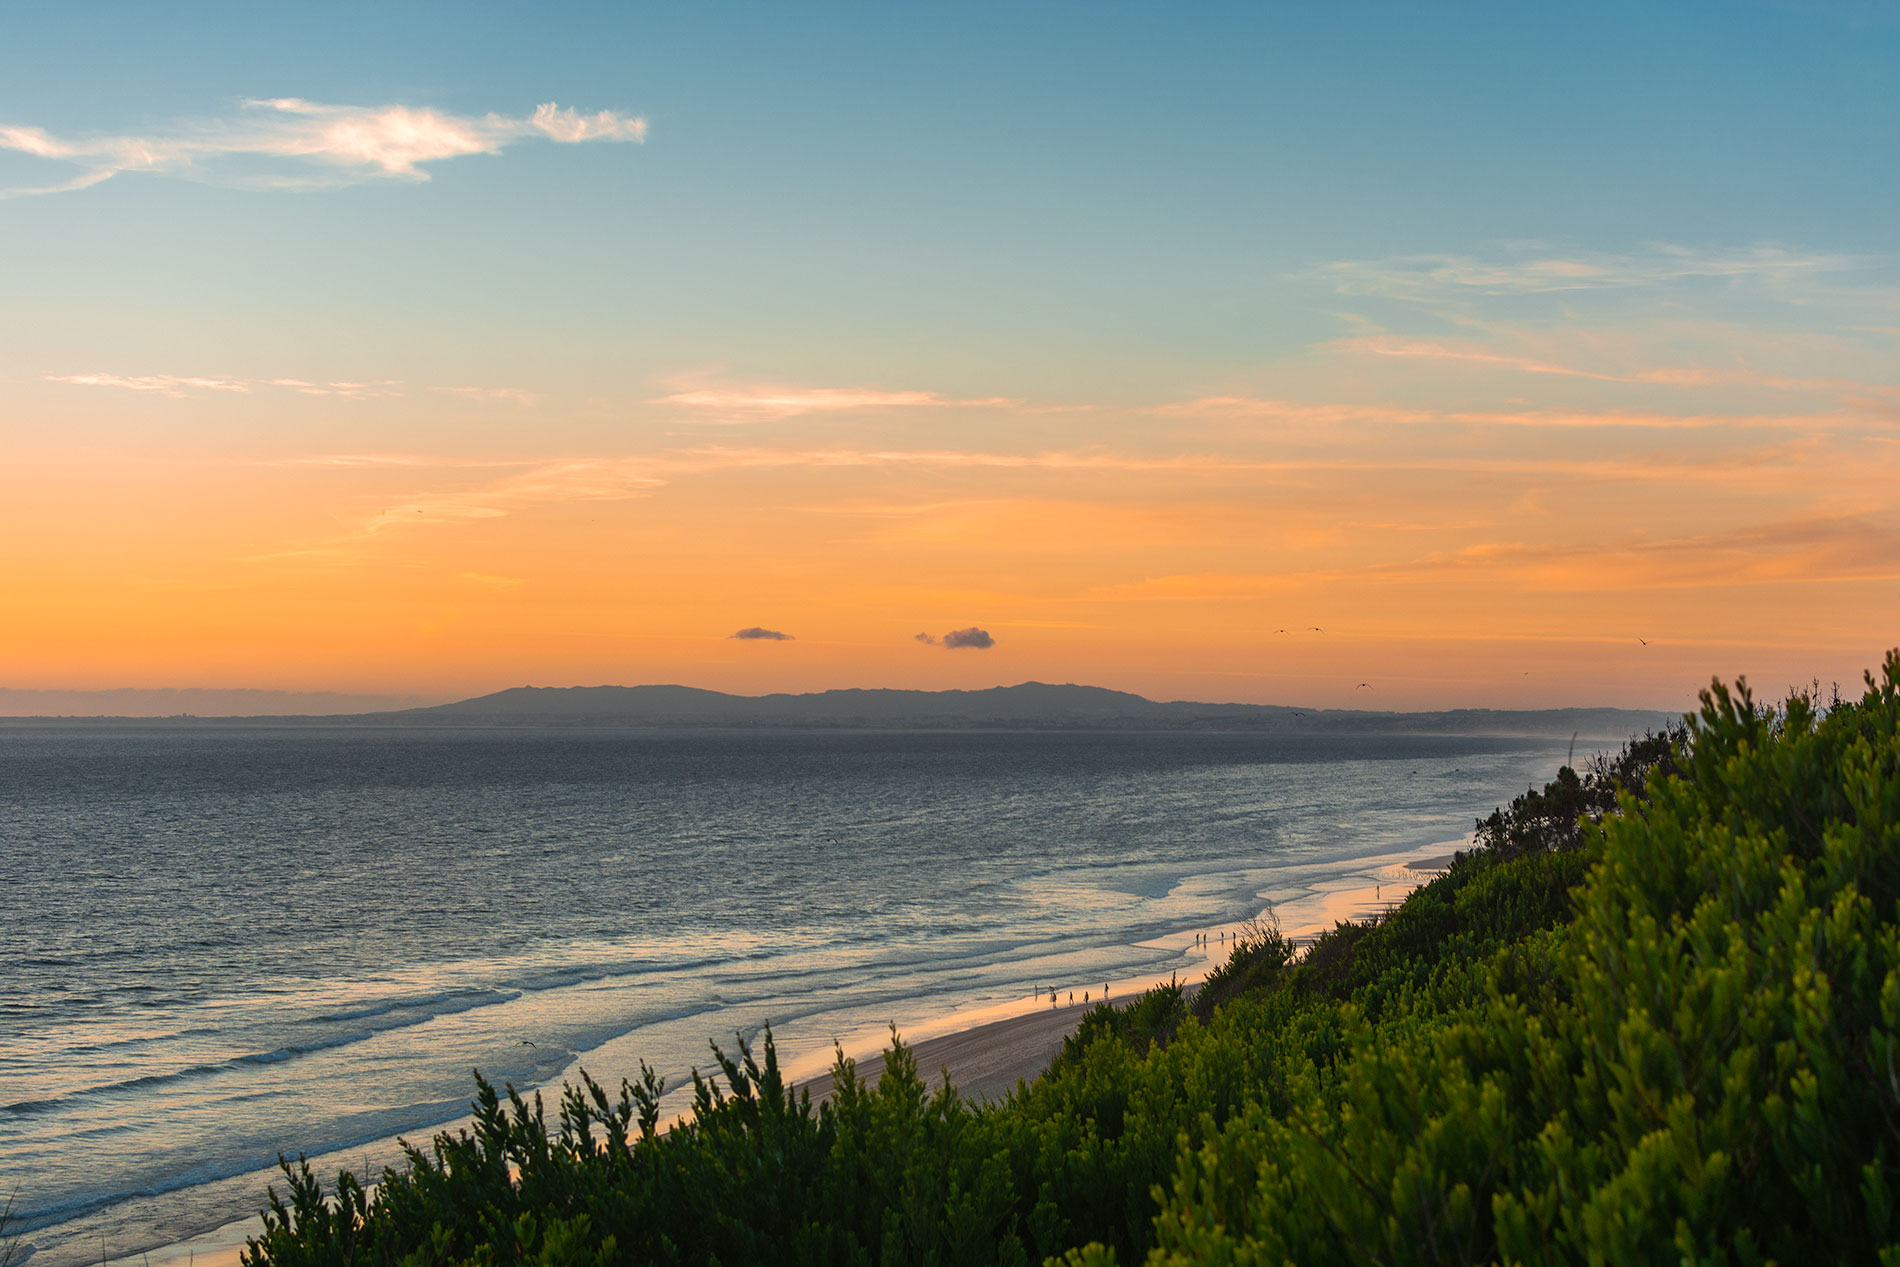 Praia da Adiça: Green vegetation, a calm sea, and an orange sunset over the Atlantic ocean